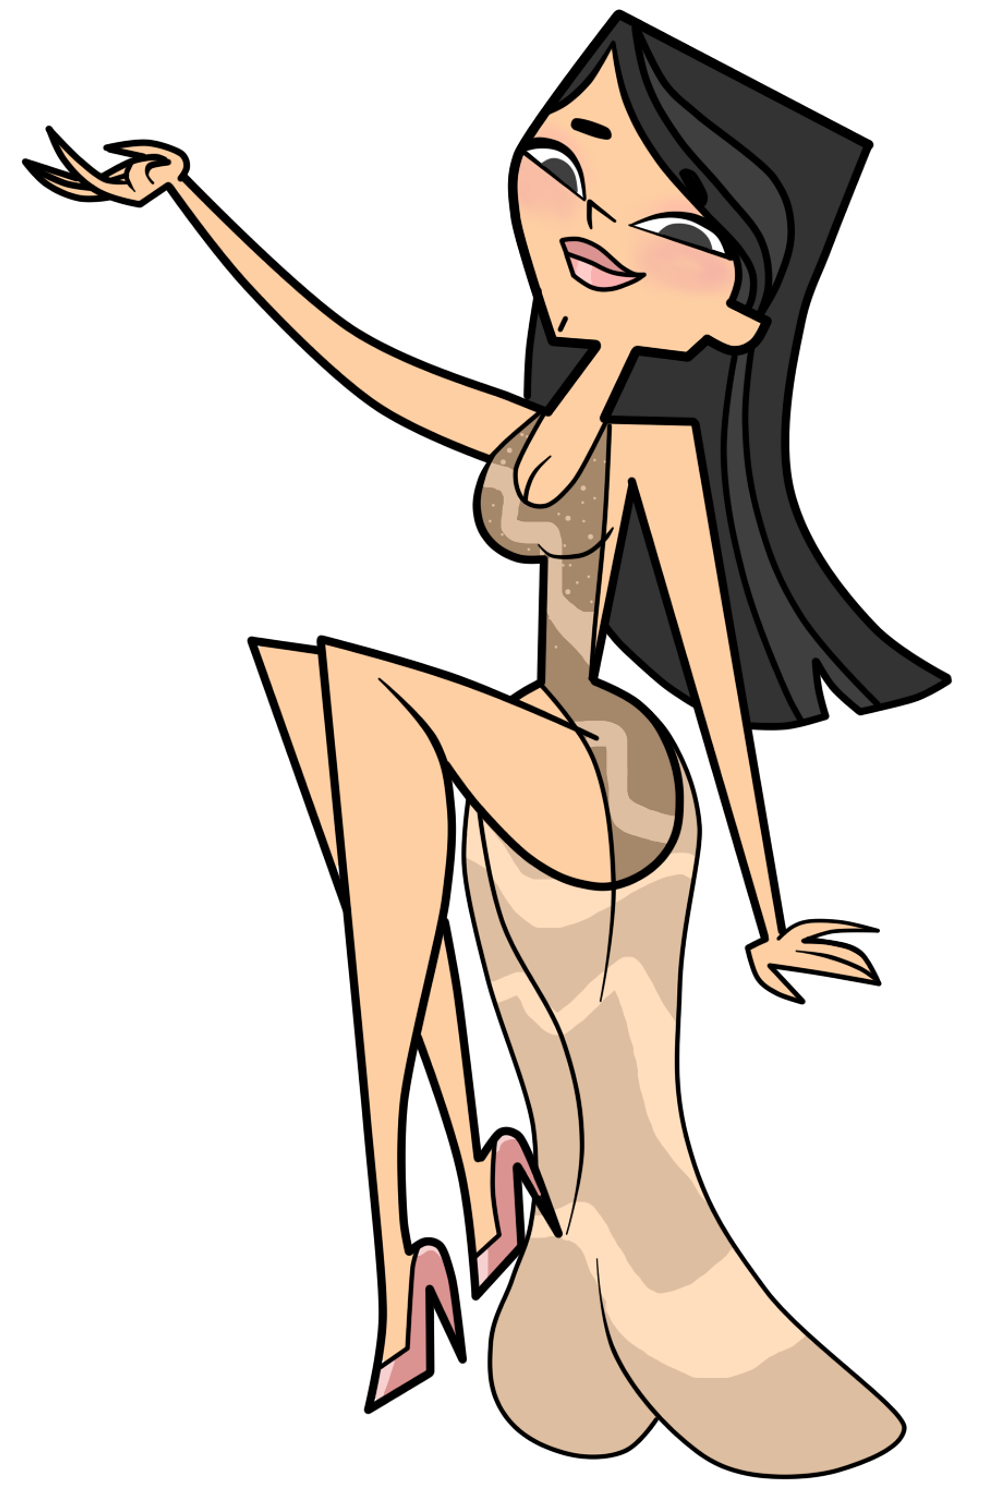 heather from total drama hot nude